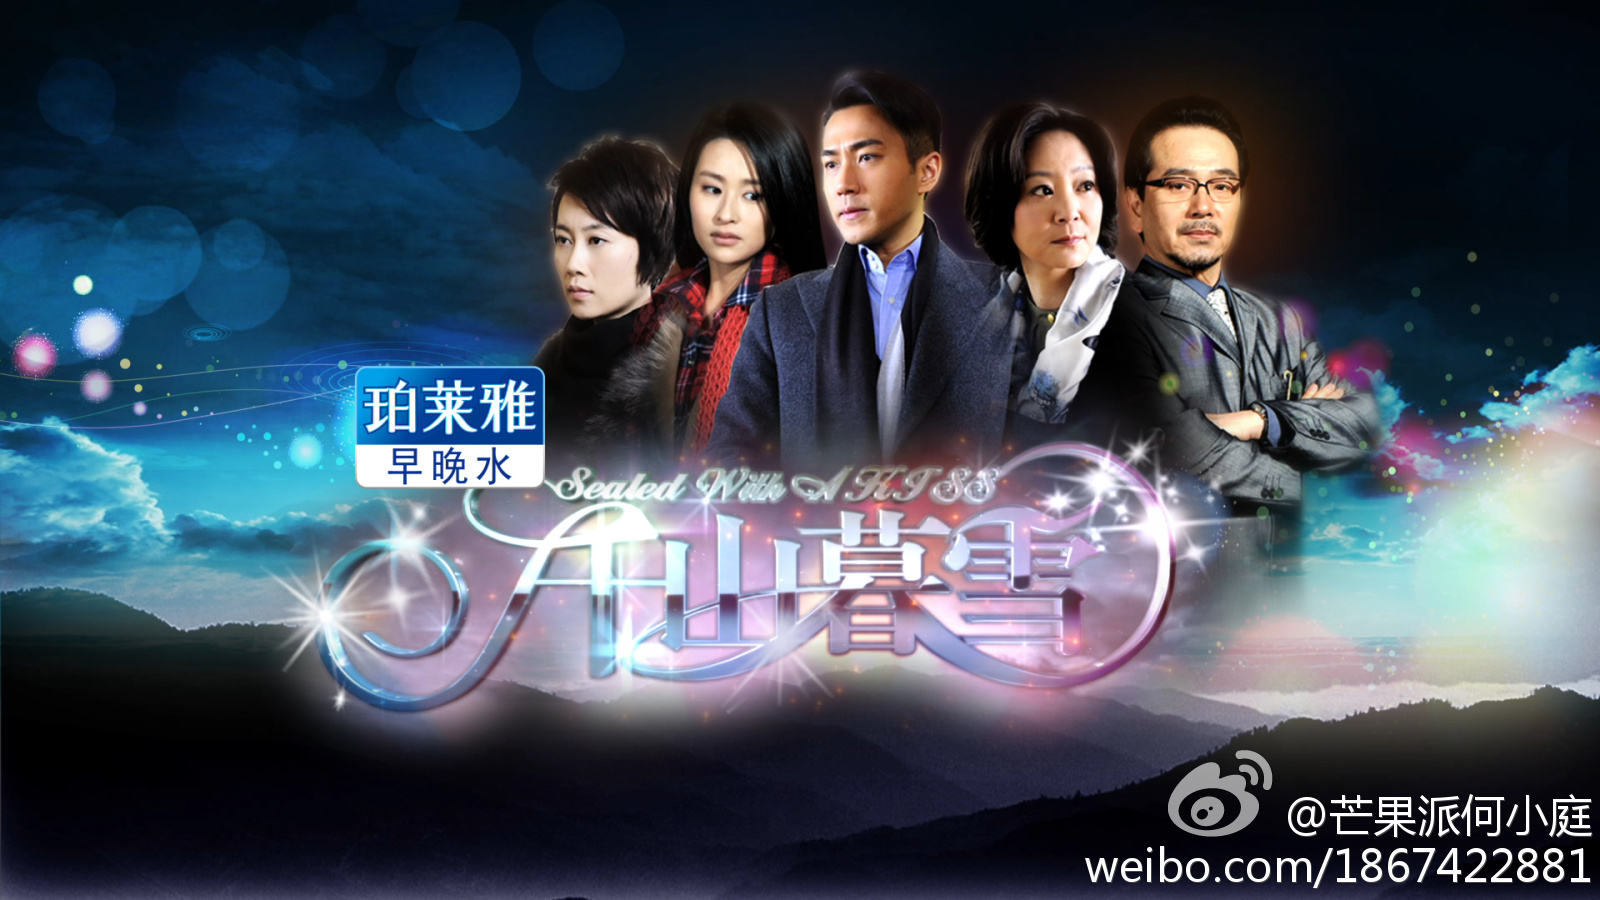 sealed with a kiss chinese drama ep 2 eng sub